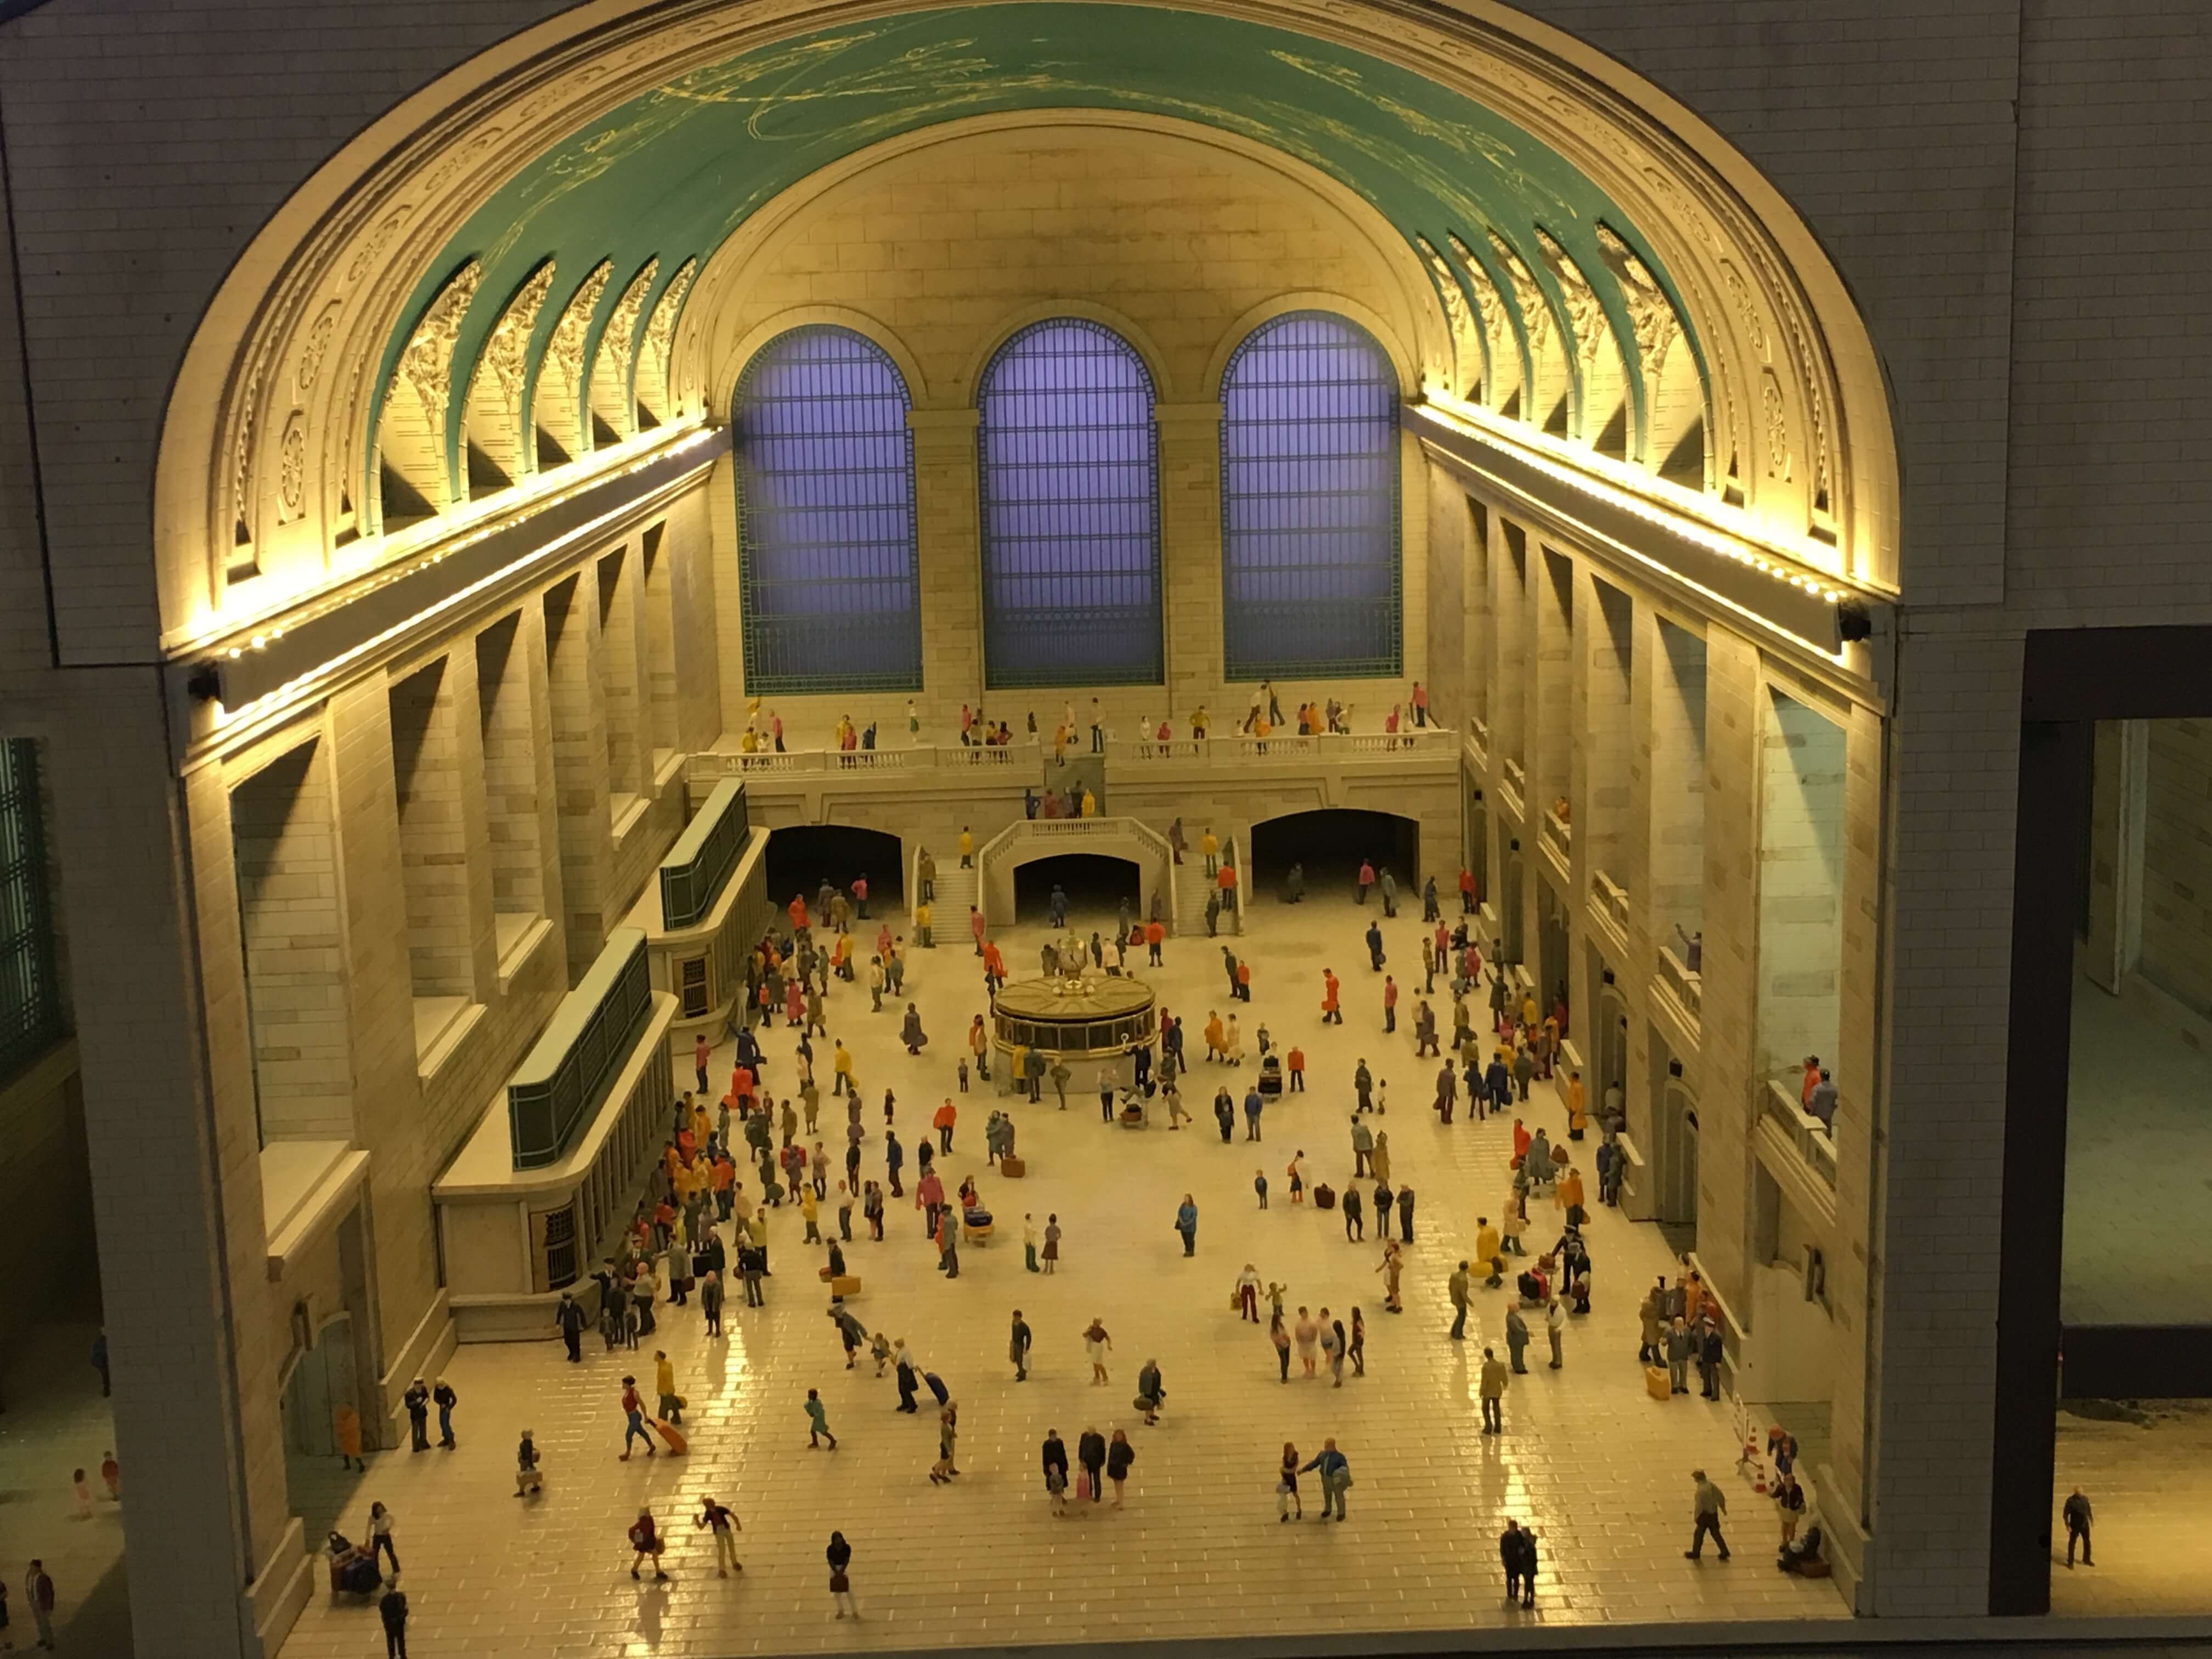 gullver's gate nyc grand central station